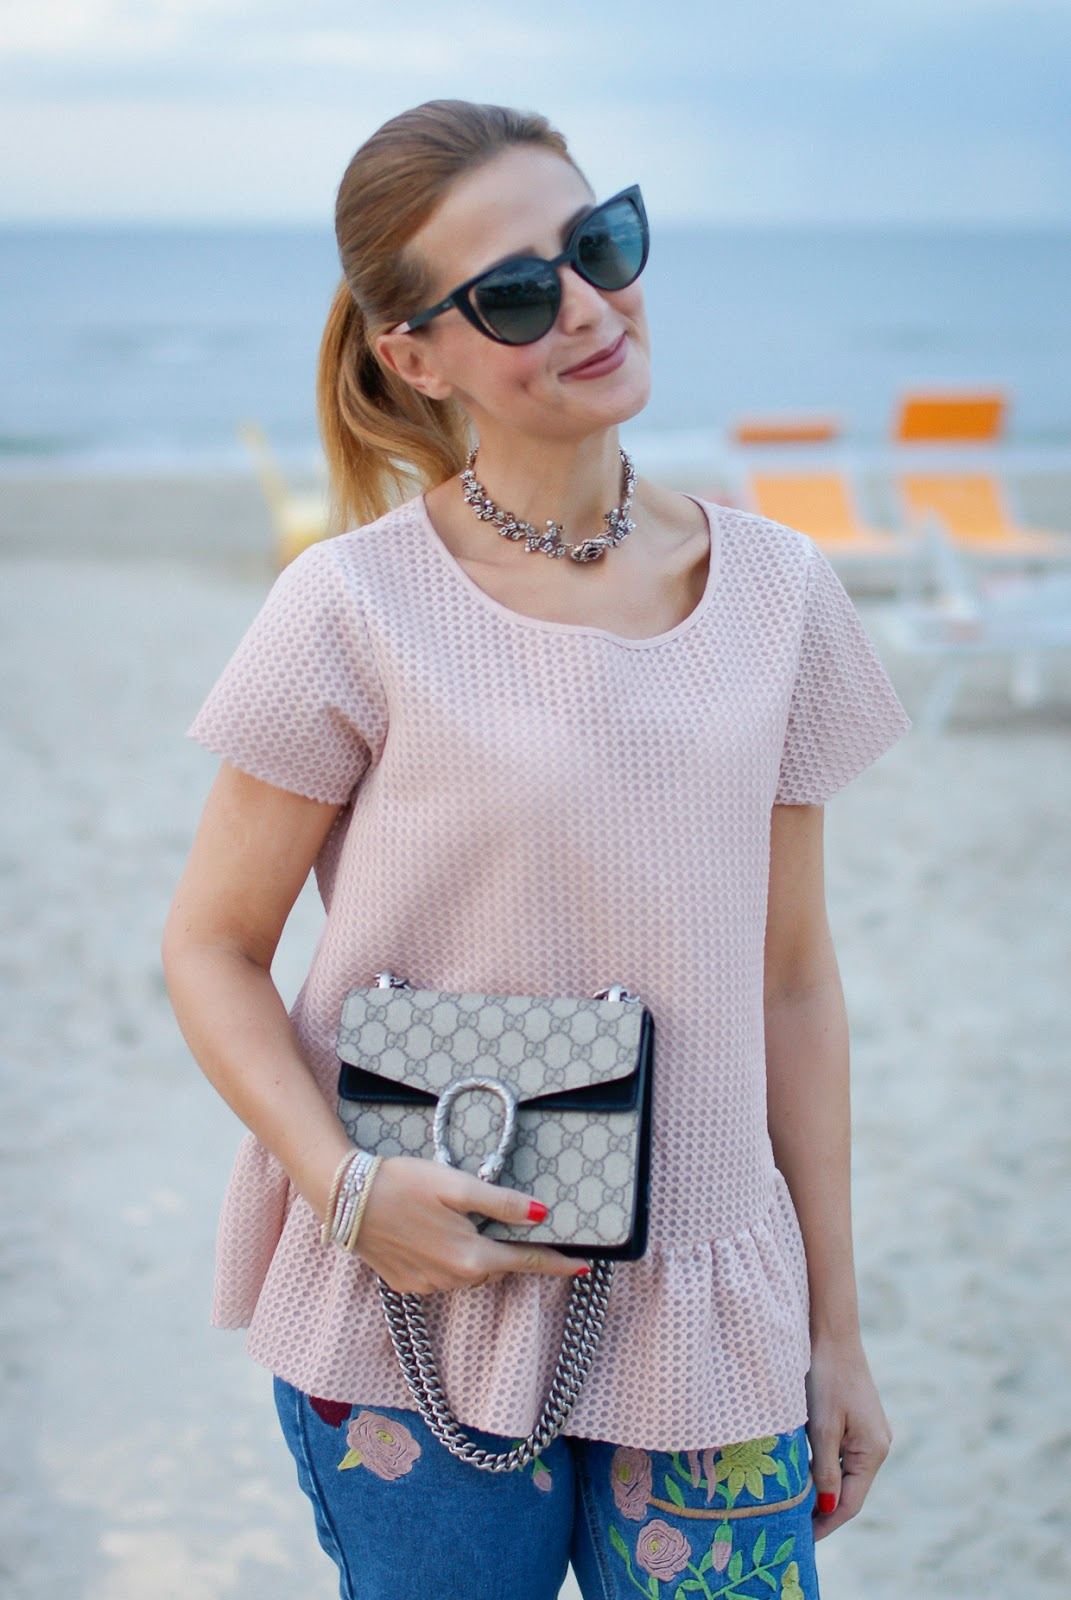 Zara chocker and Gucci mini Dionysus bag on Fashion and Cookies fashion blog, fashion blogger style